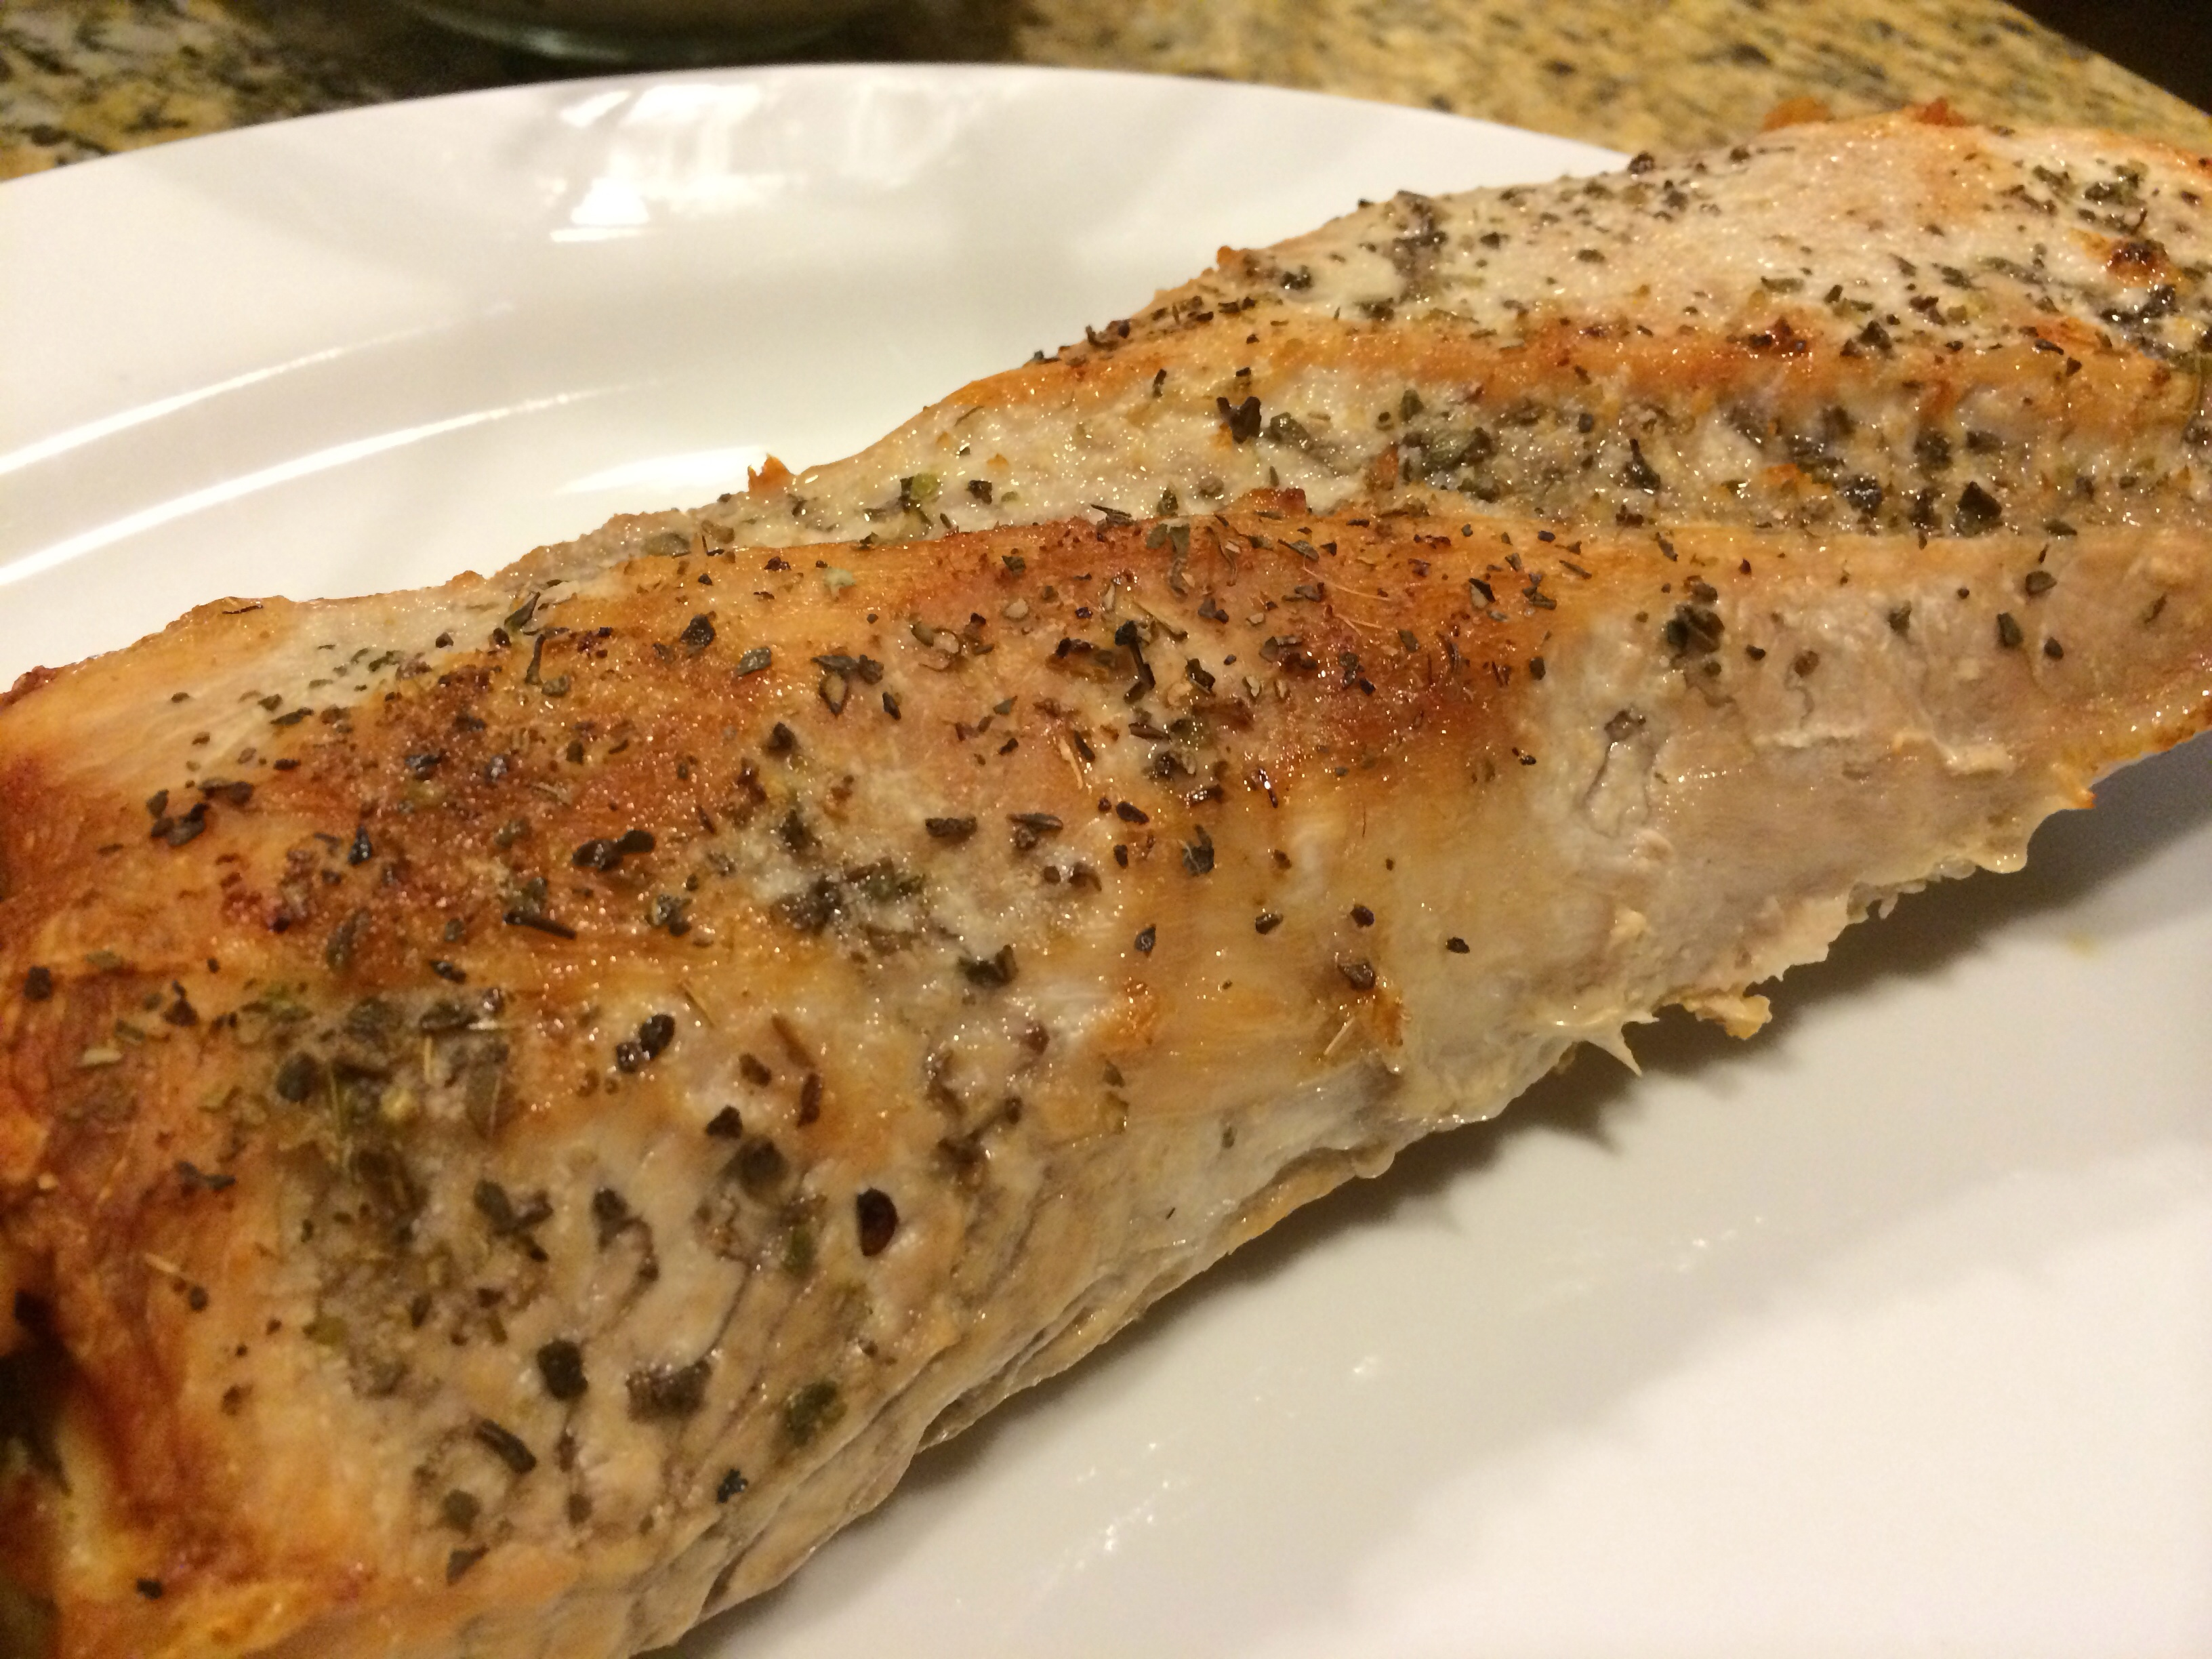 recipe: broil pork tenderloin in oven [28]